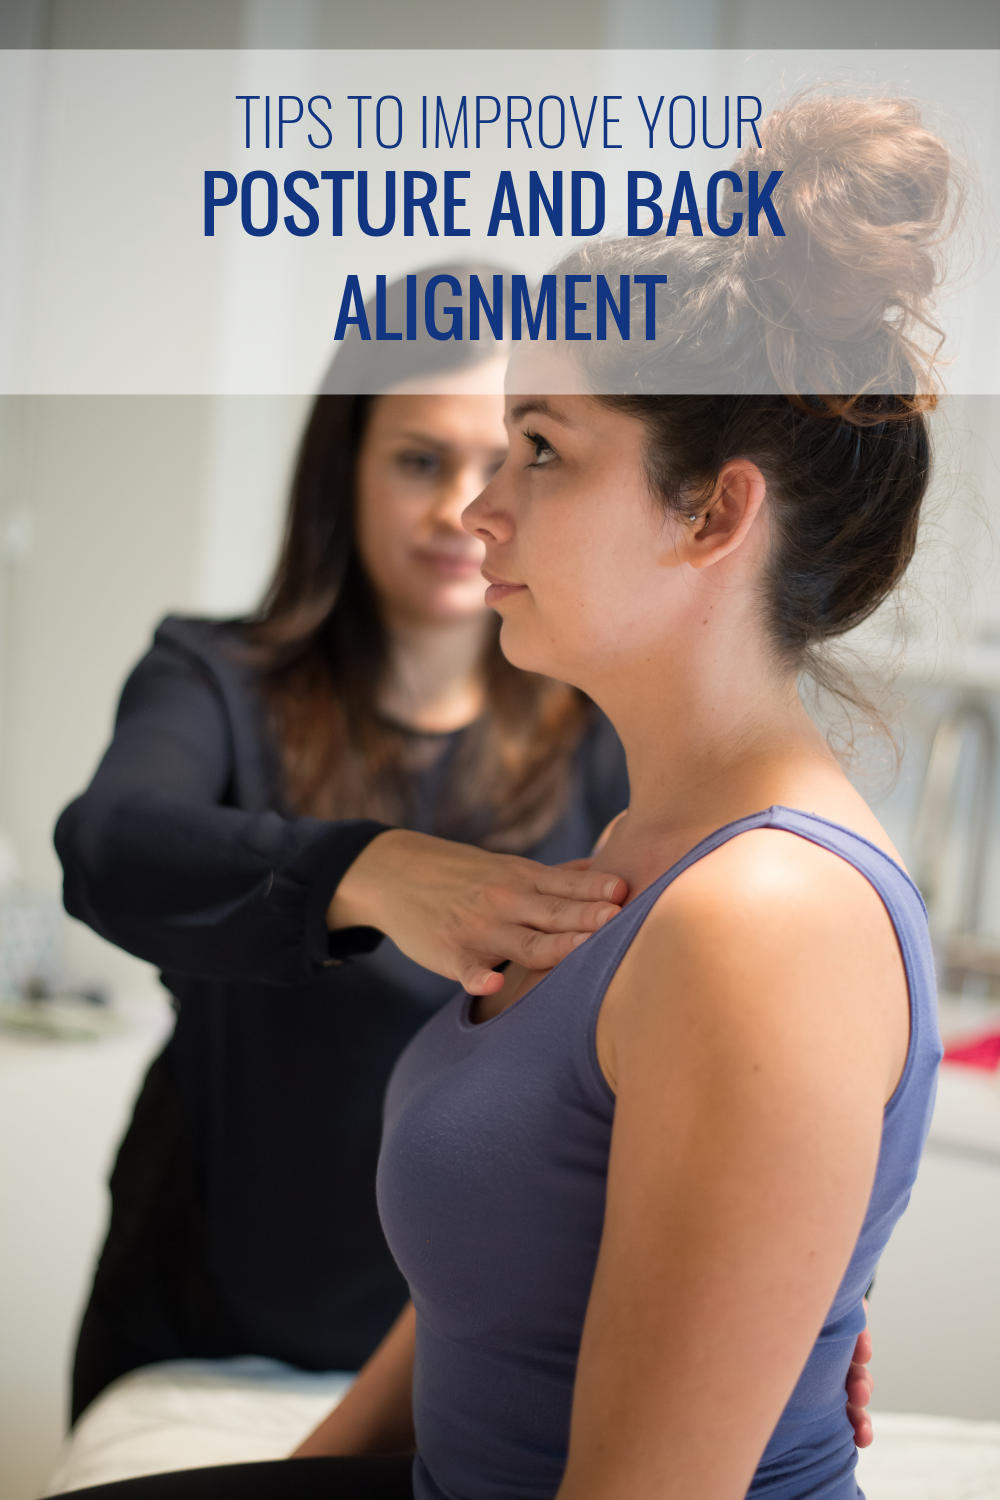 Tips to Improve Your Posture and Back Alignment